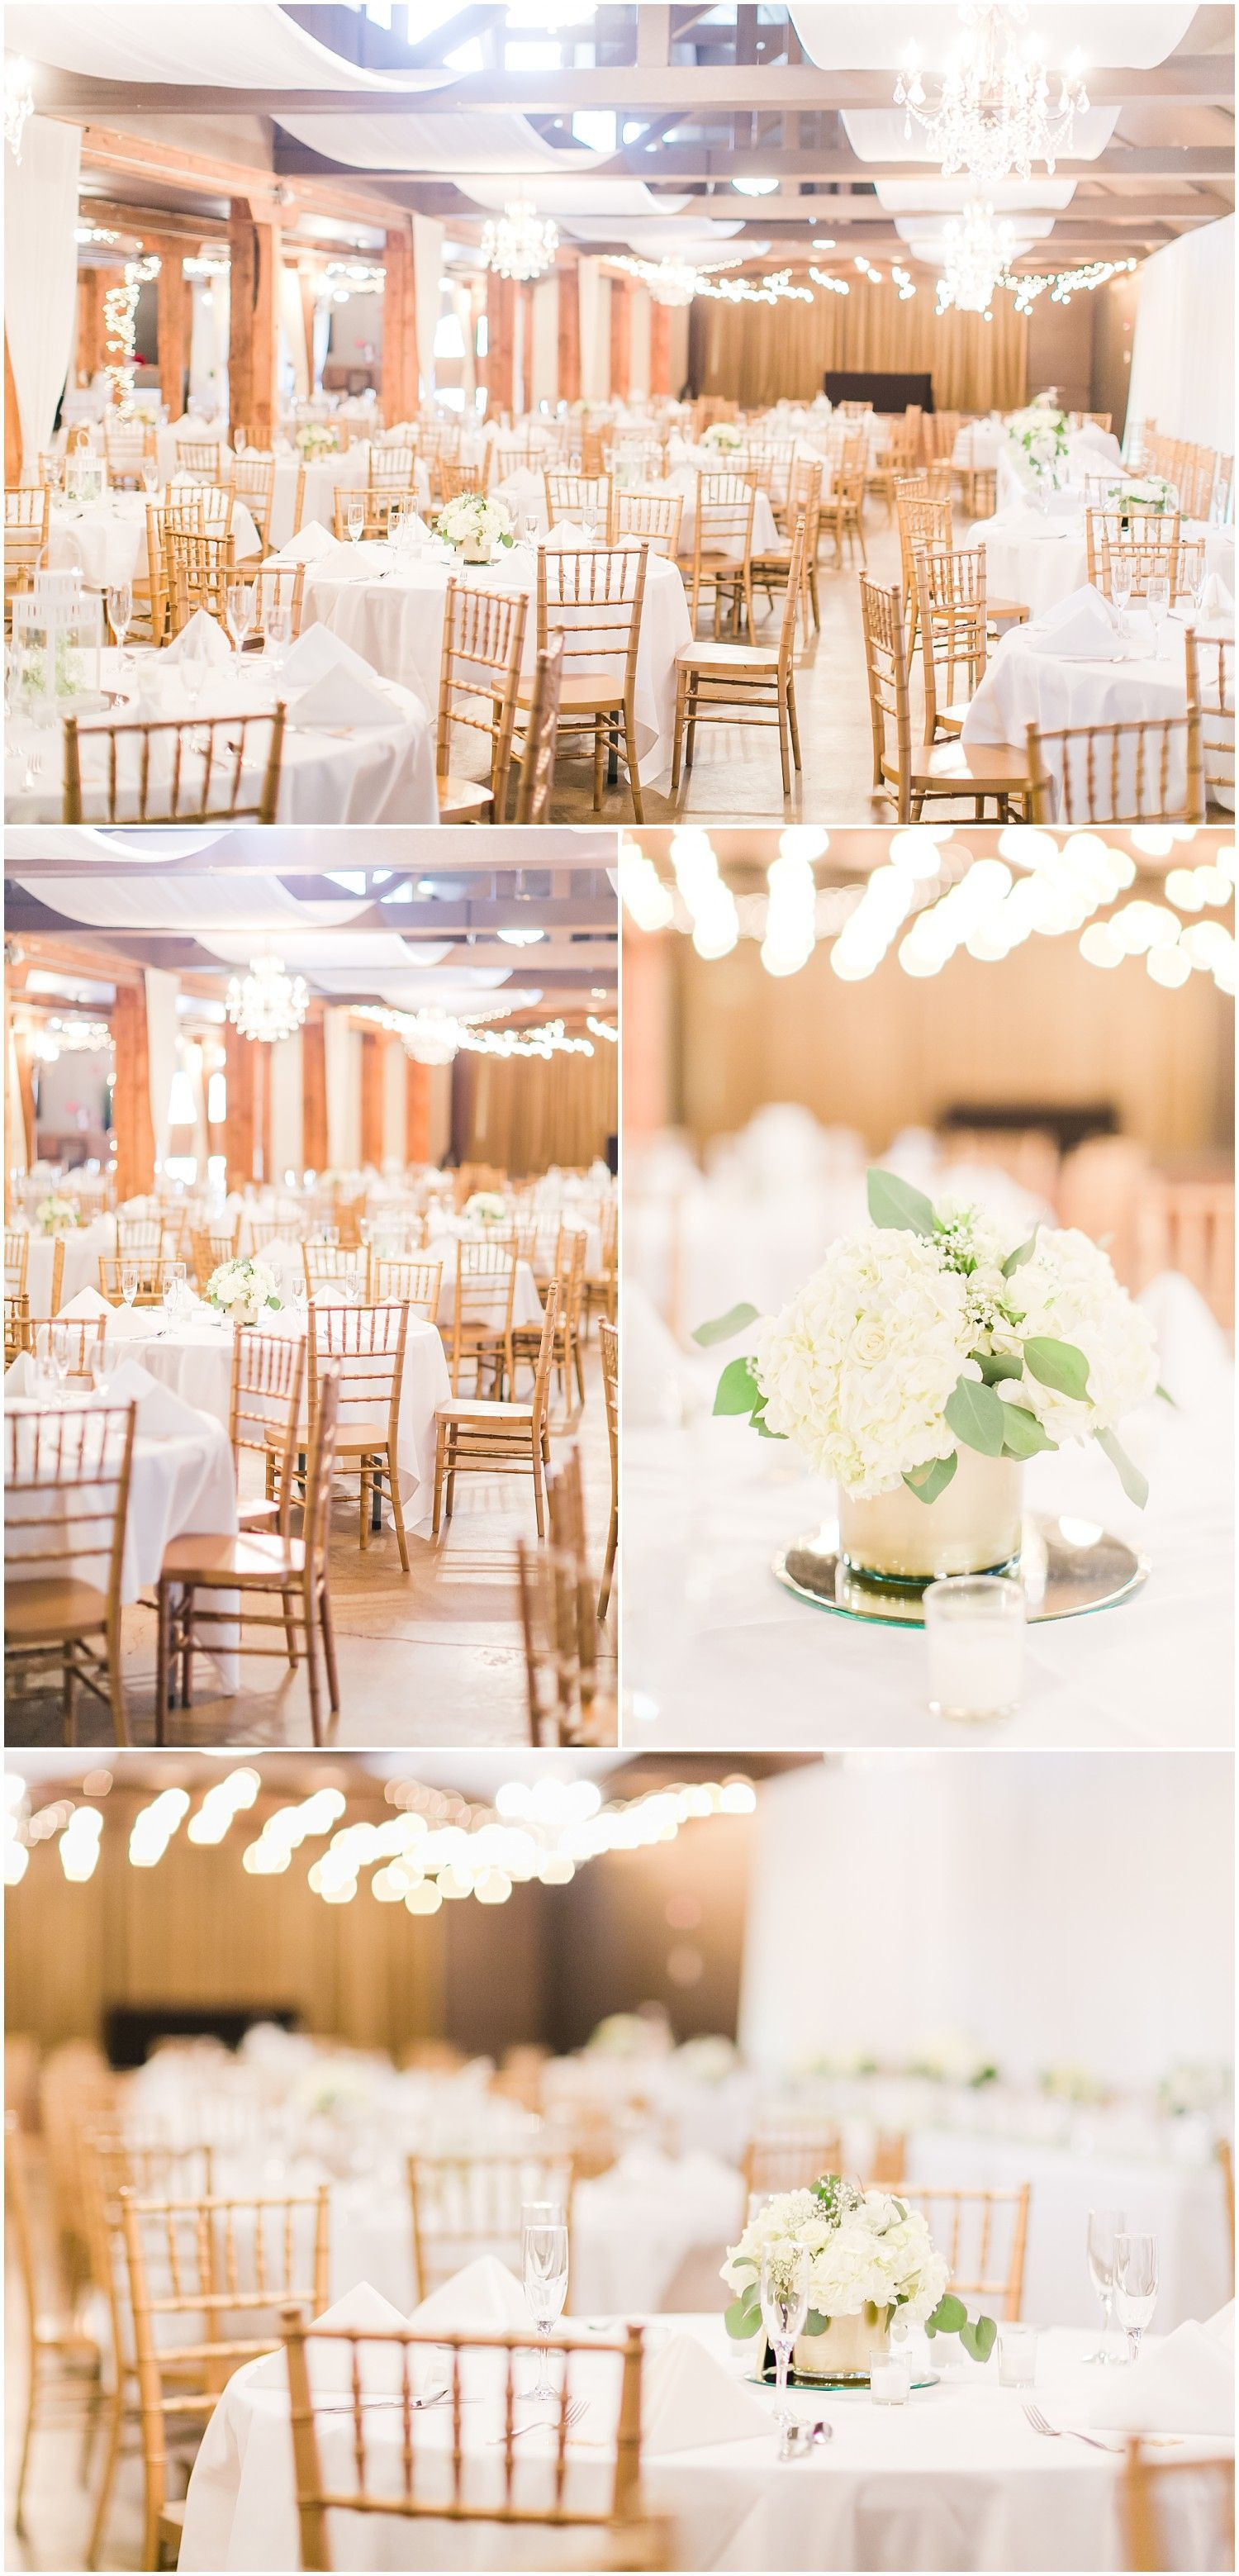 Lord Hill Farms Wedding | Cheap wedding decorations, Wedding venue  decorations, Wedding table centerpieces